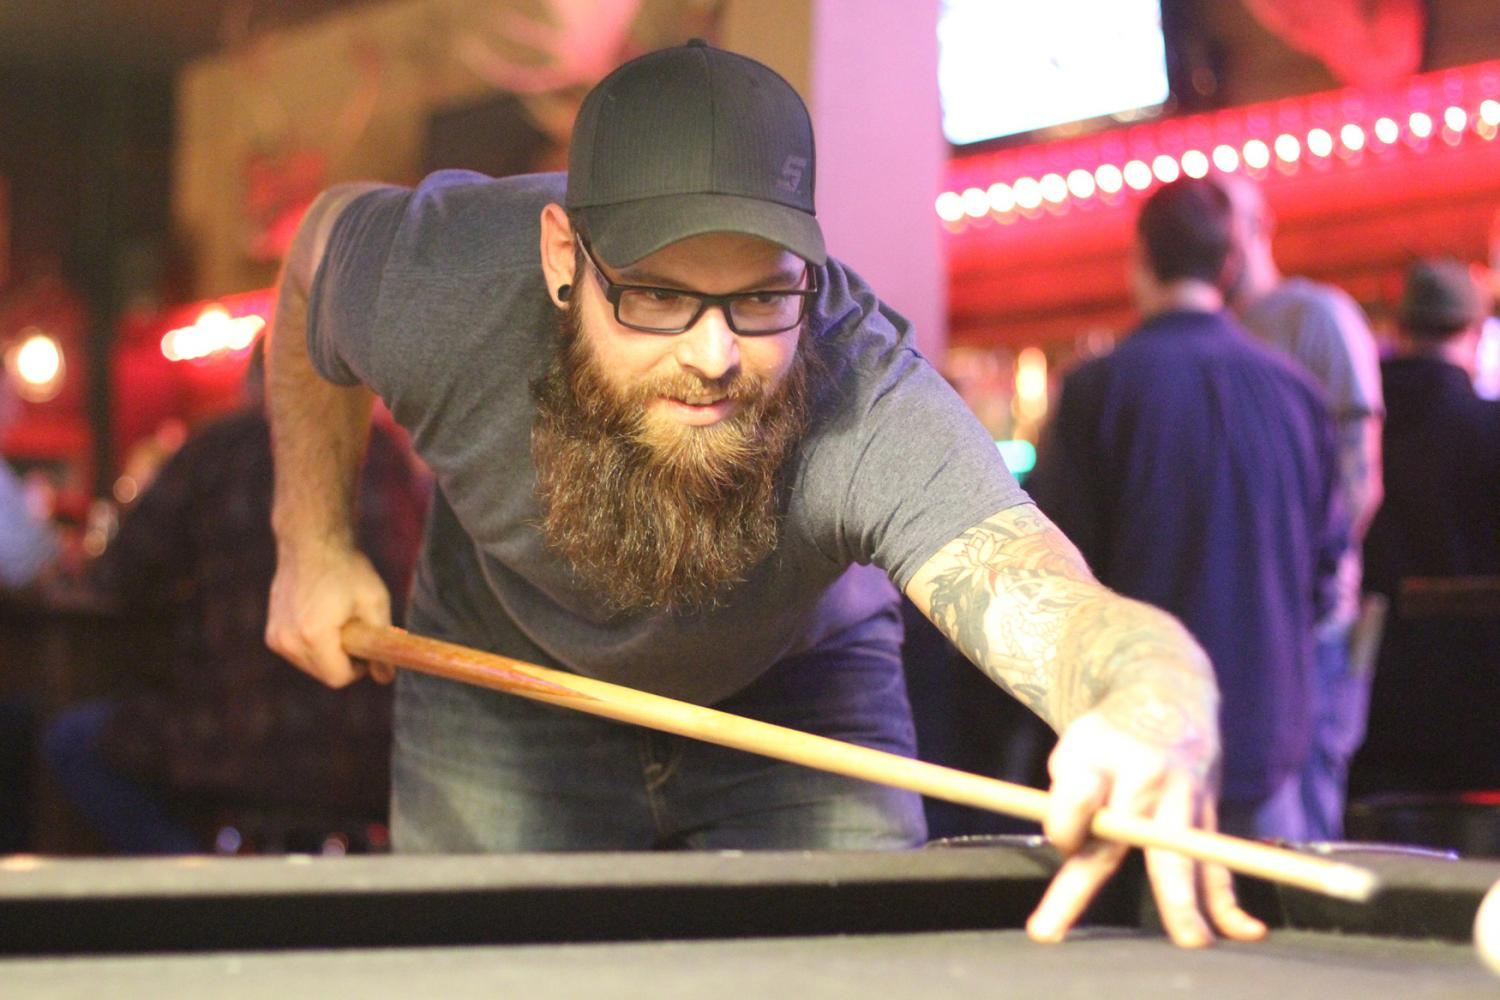 Mike Carson playing pool at Wild Bill's Longbar